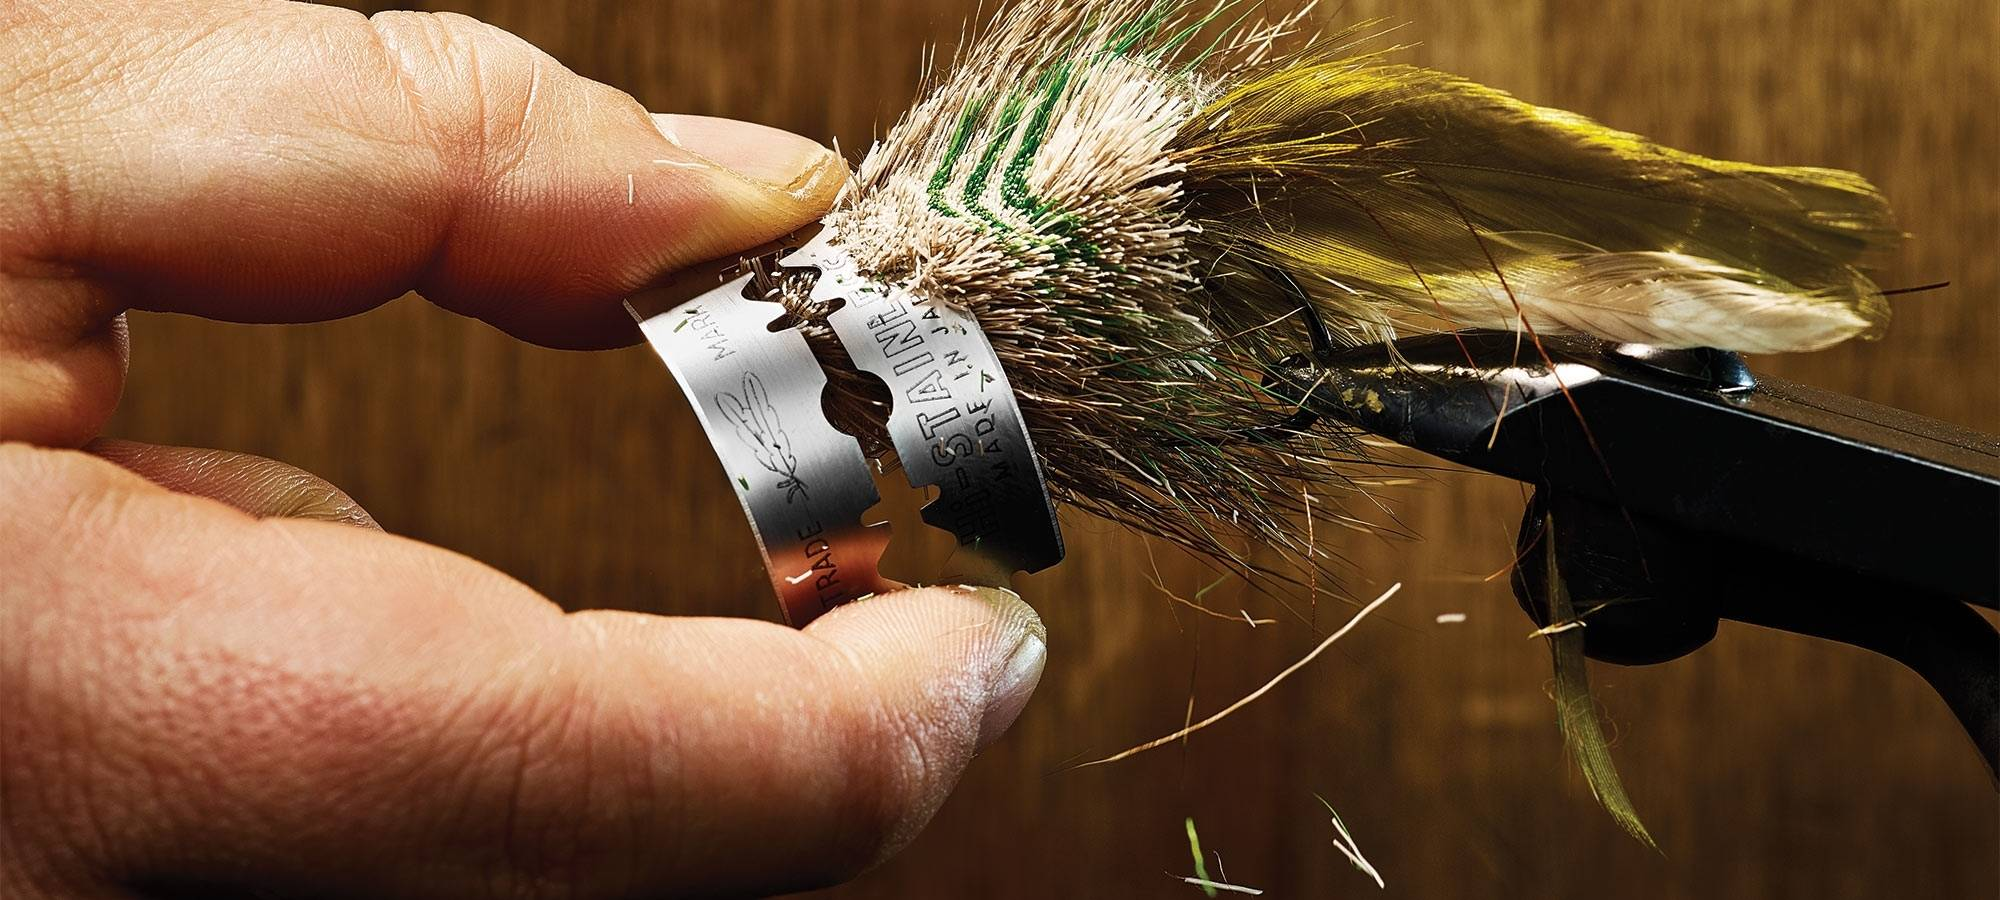 Shave And A Hair Bug How To Flyfish With Deer Hair Flies